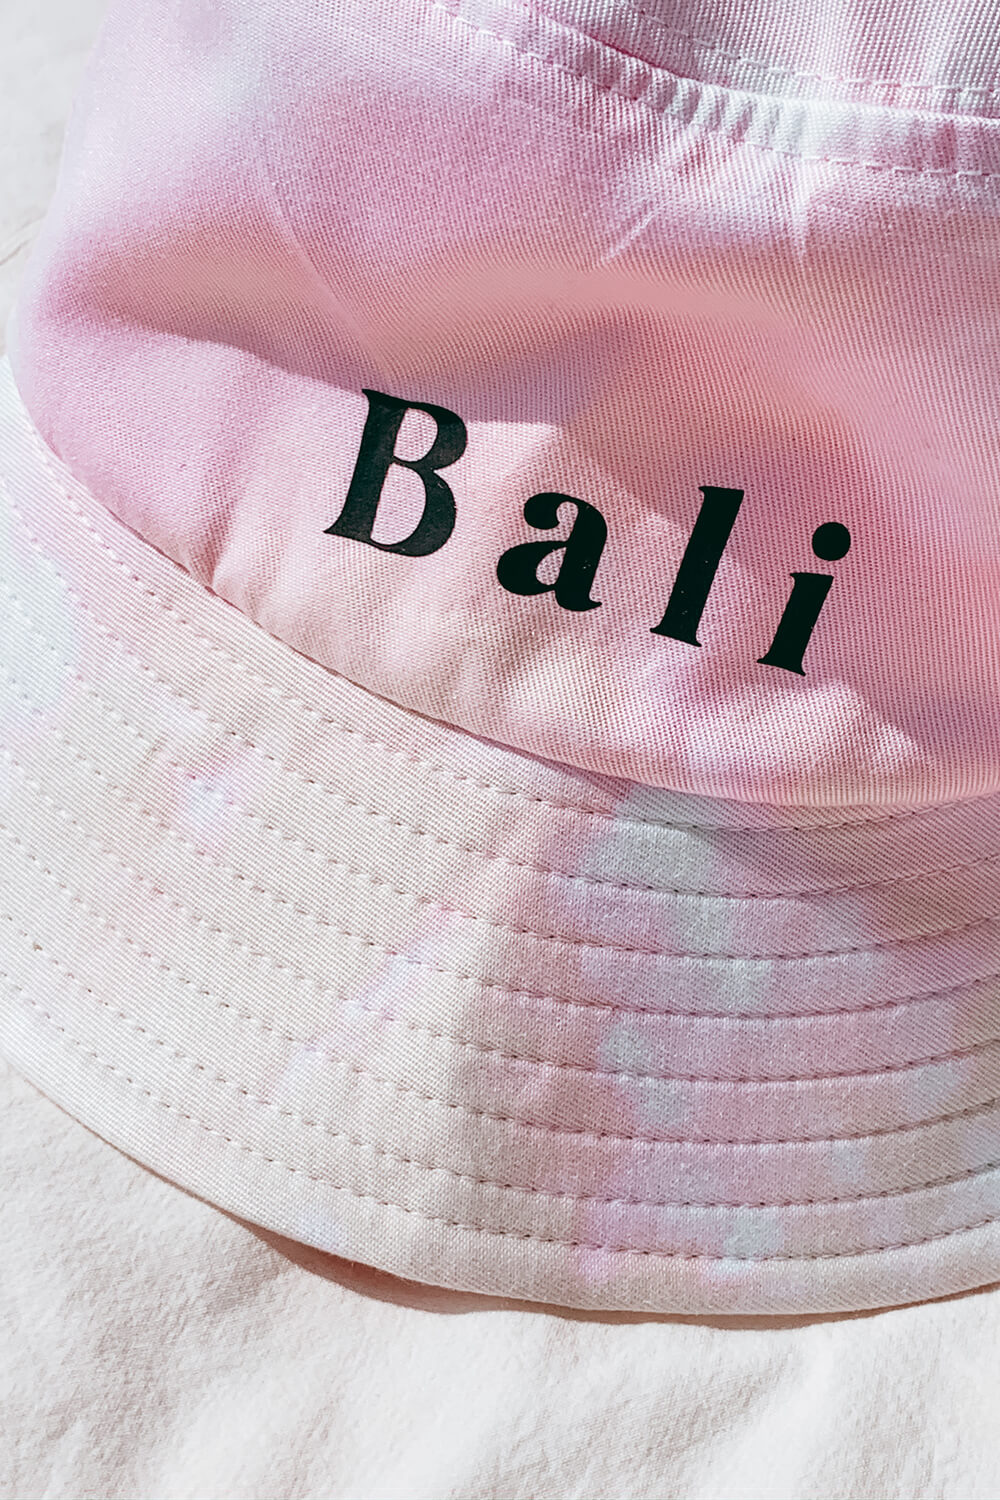 Bali Tie Dye Bucket Hat - Cottoncandy